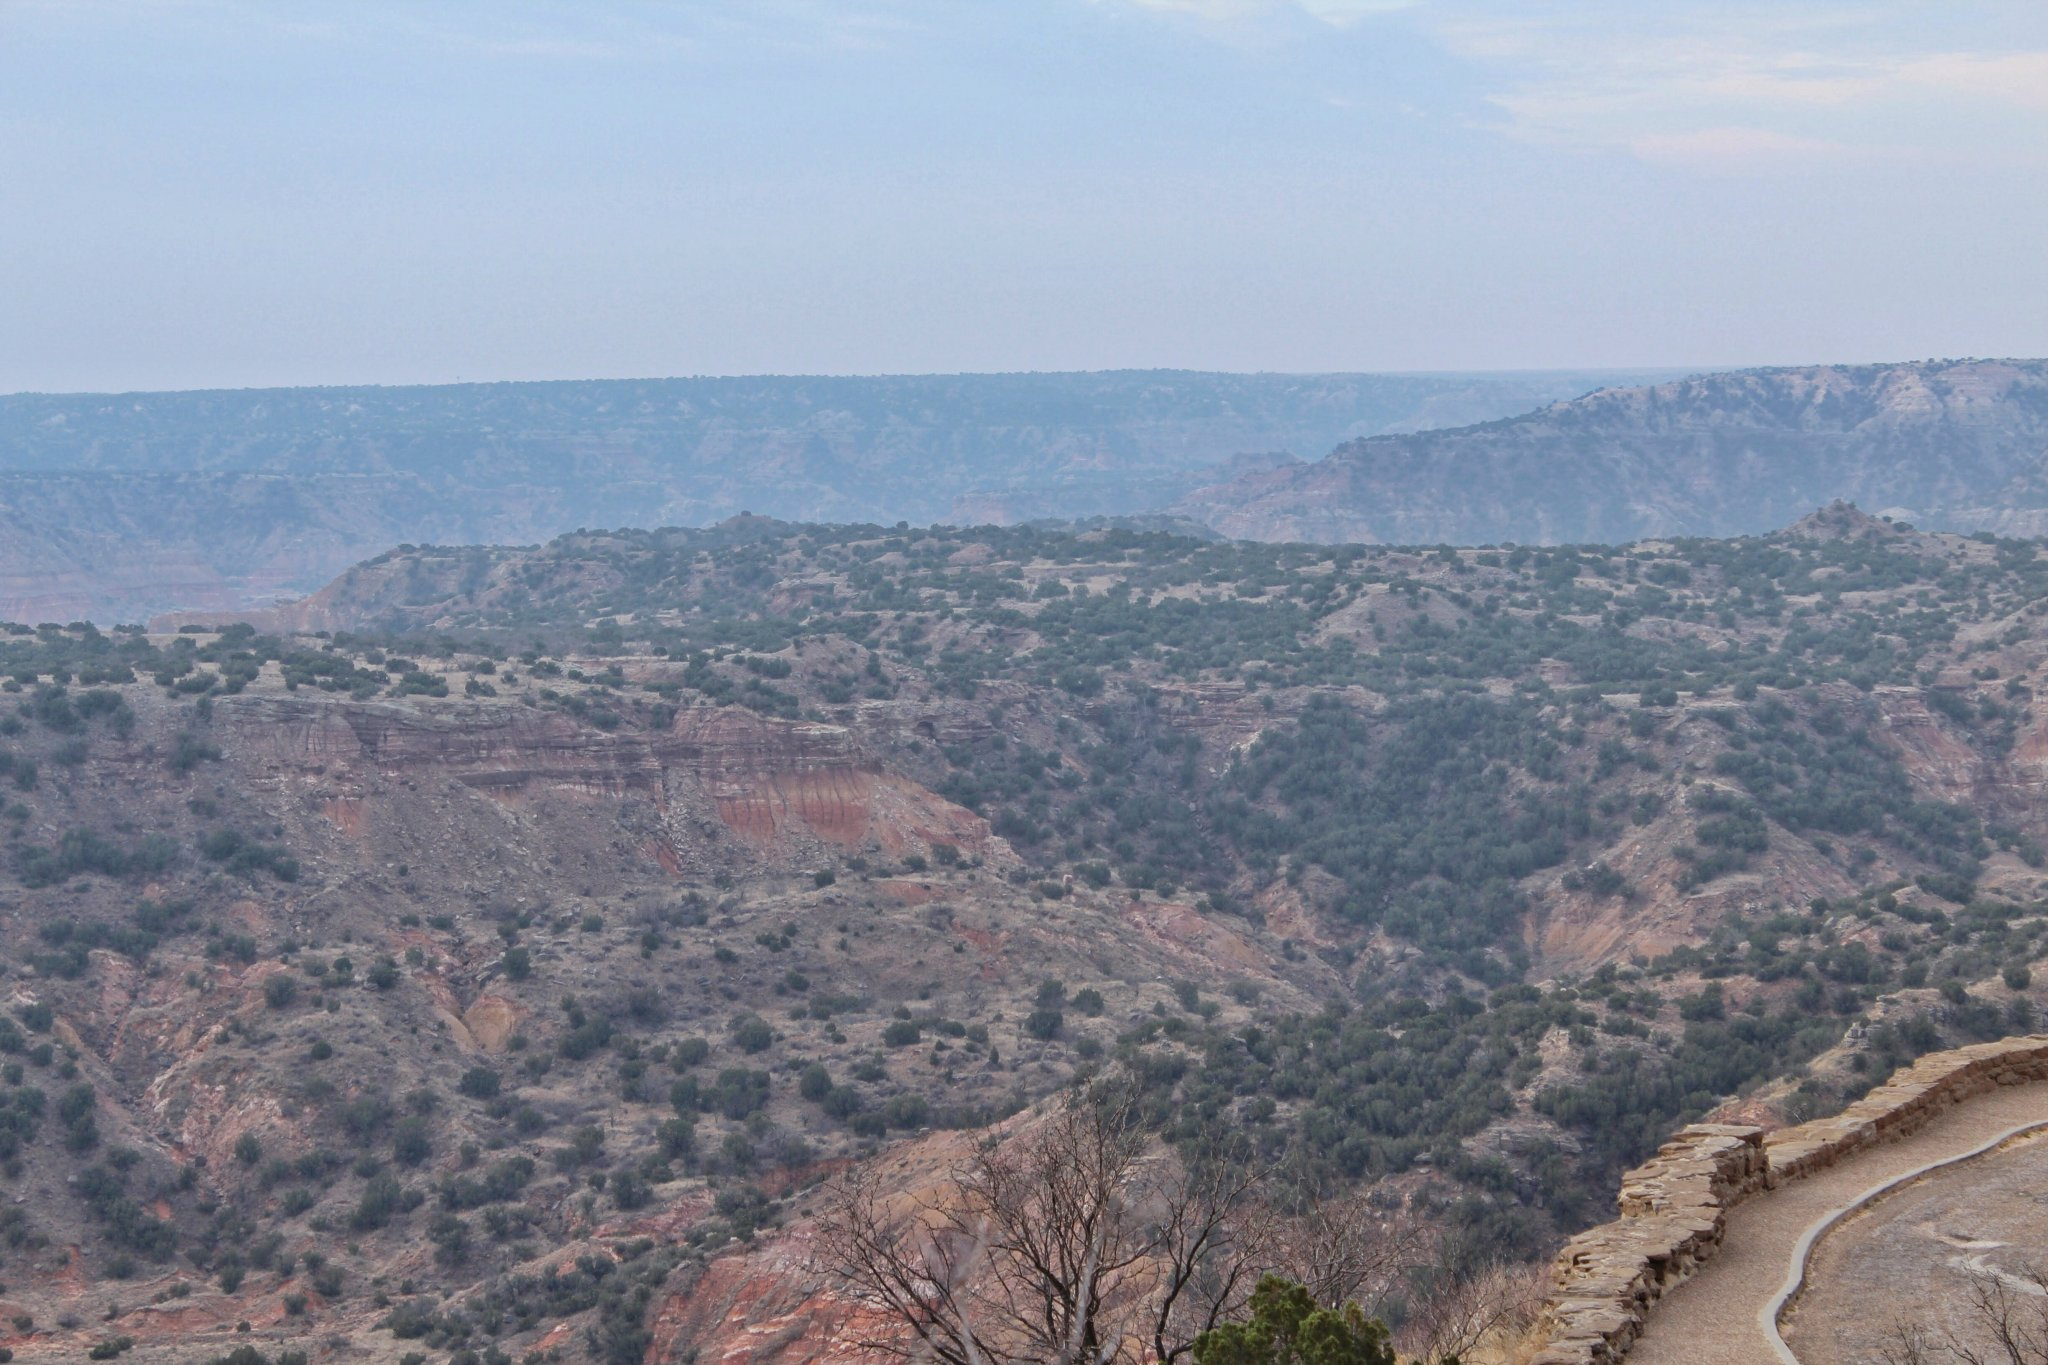 Exploring Palo Duro Canyon: View from Scenic Byway